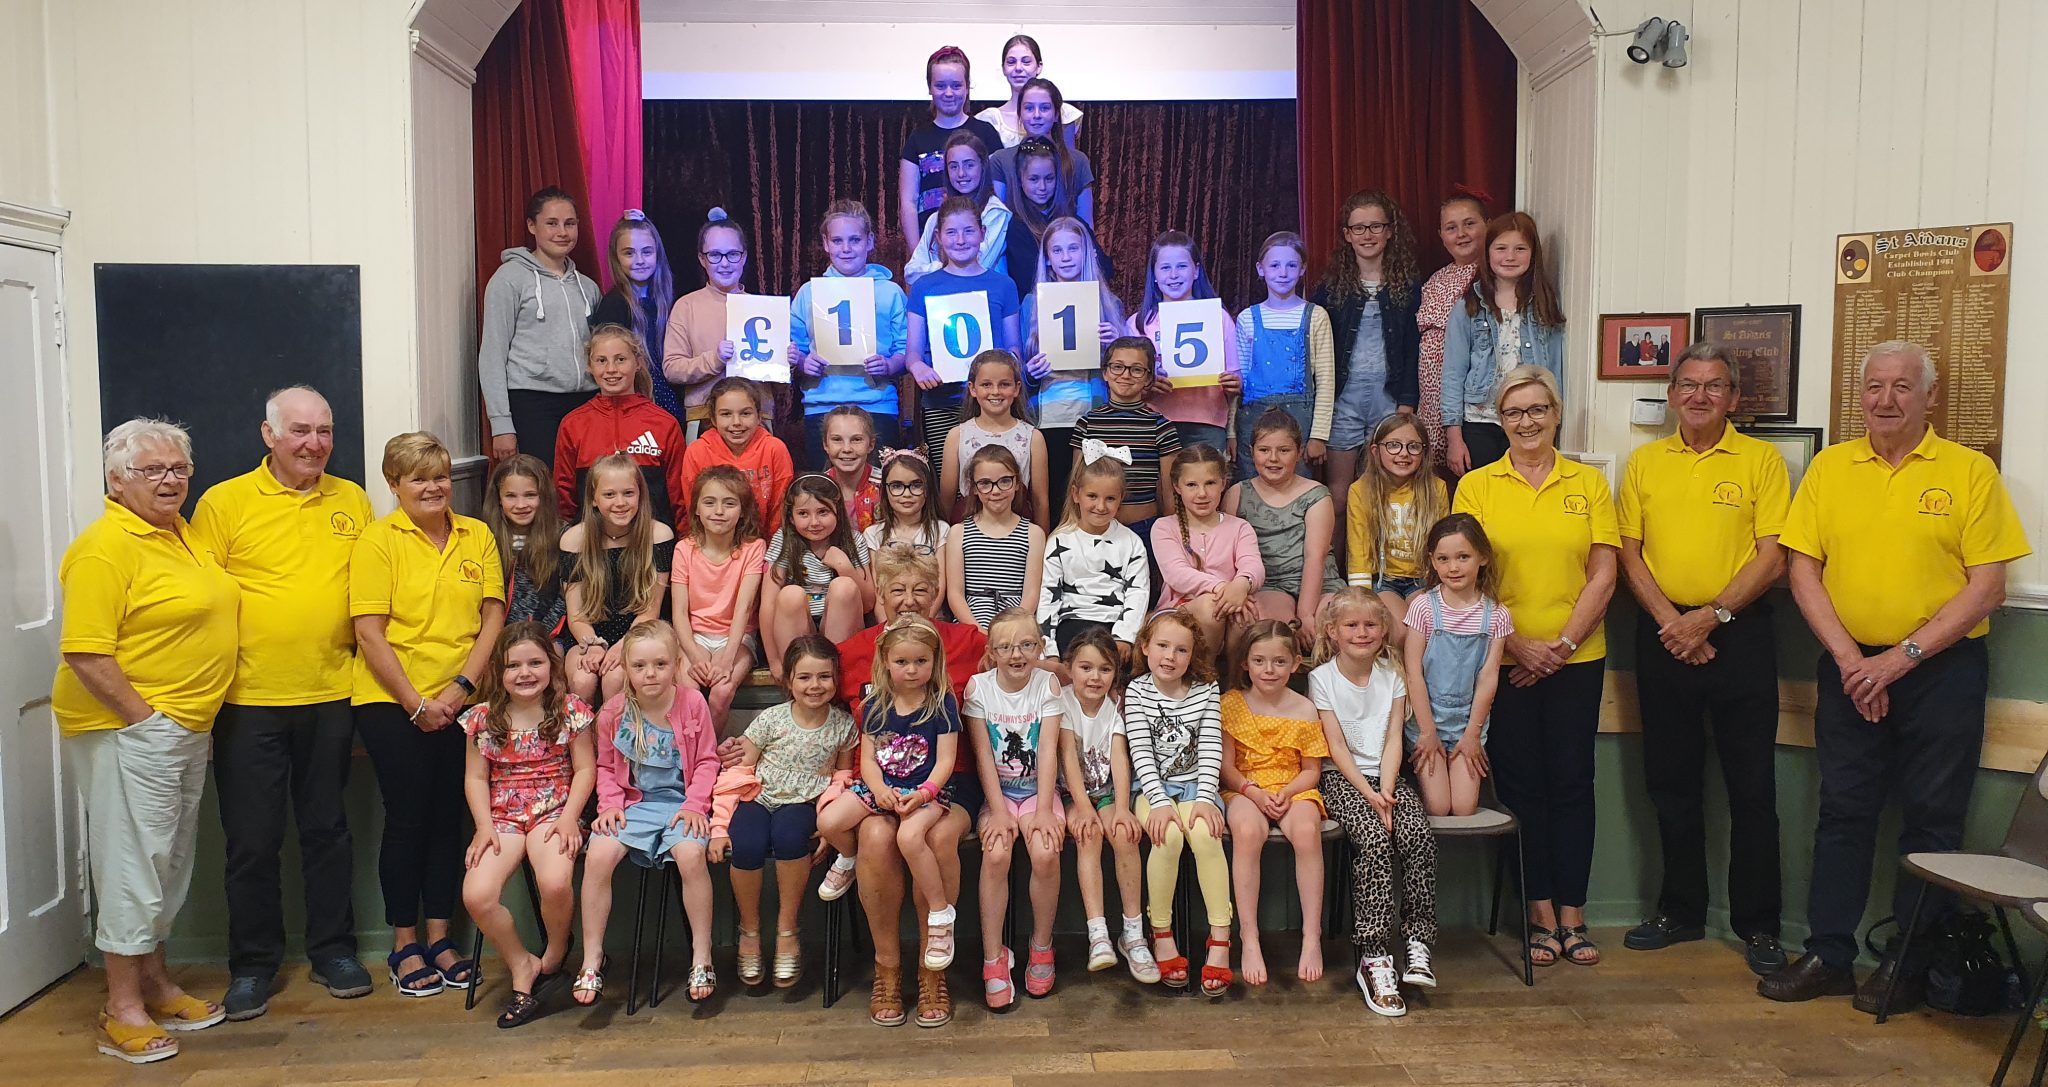 Nancy's Dancers Summer Show 2019 - Berwick Cancer Cars